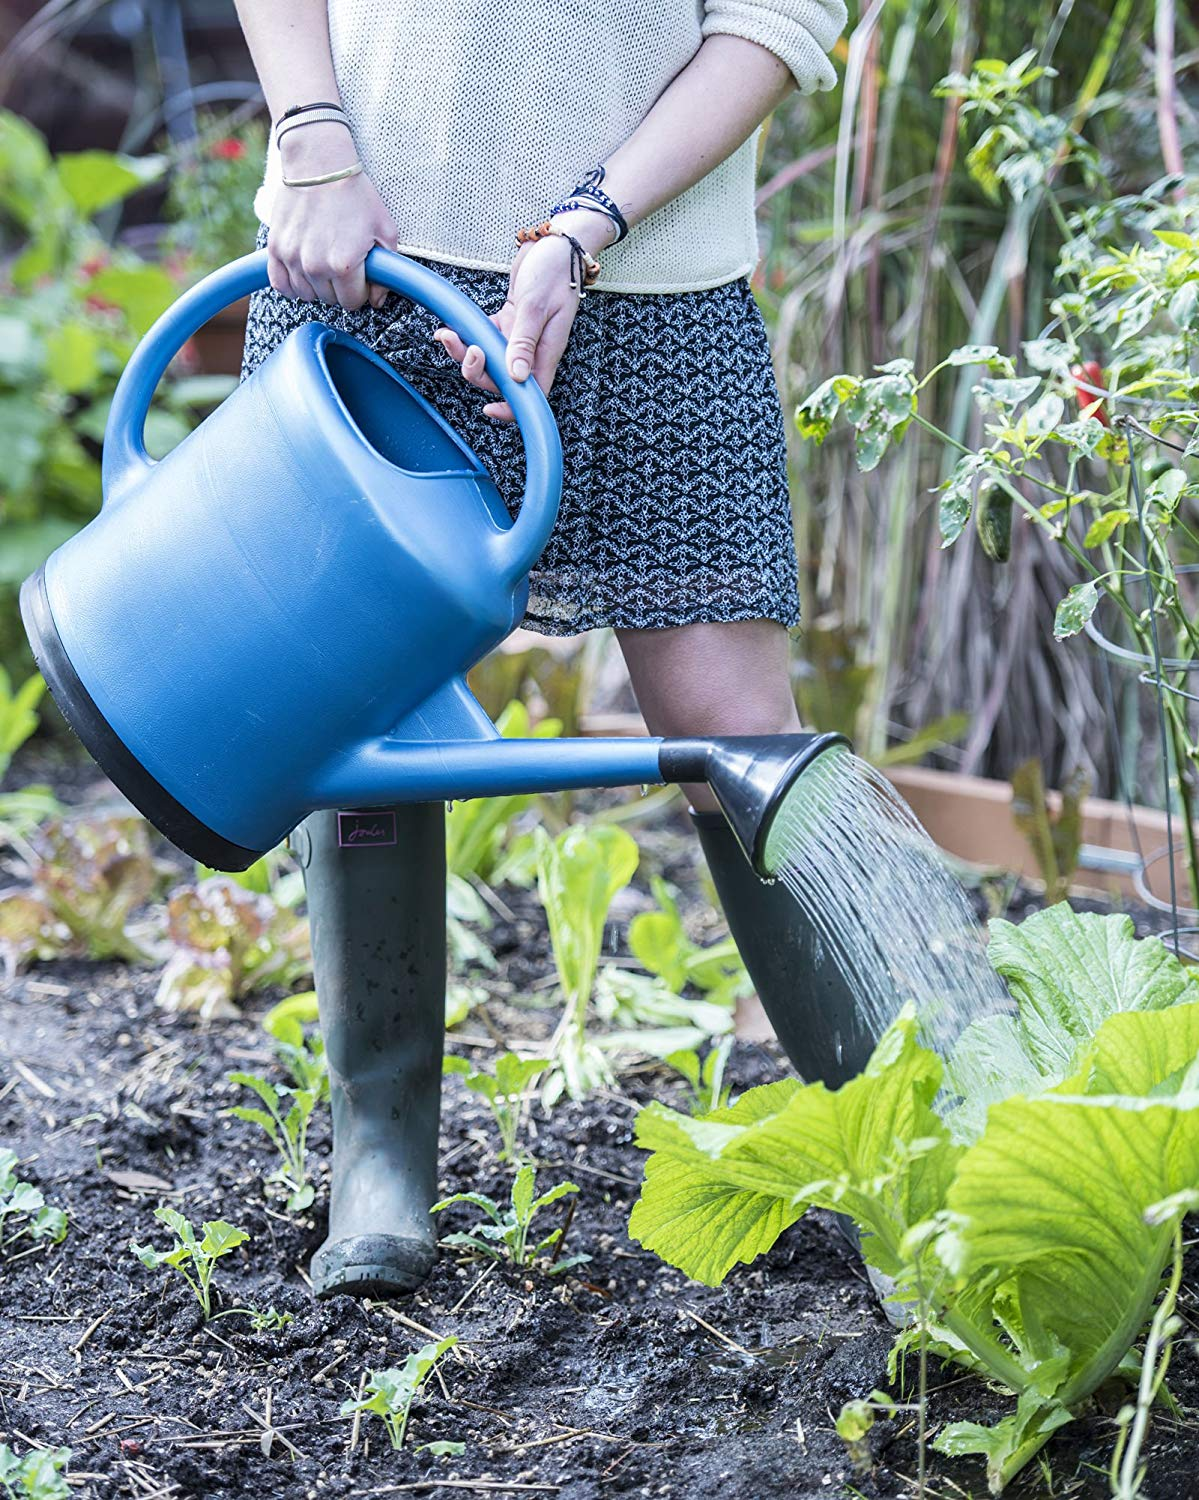 Woman in skirt and rain boots watering garden bed with oversize blue watering can